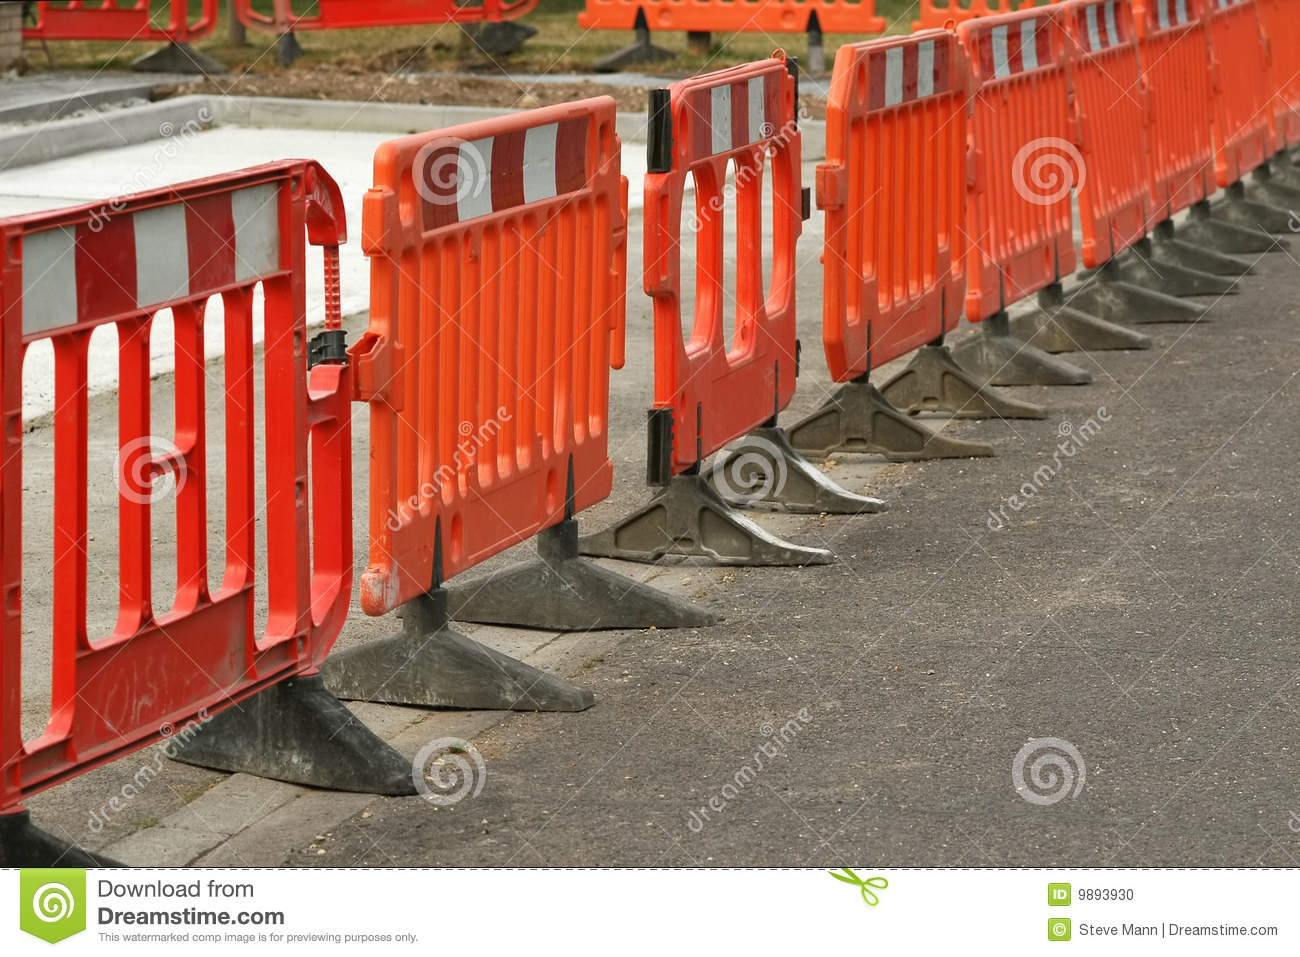 Roadwork barriers stock photo  Image of traffic, road - 9893930